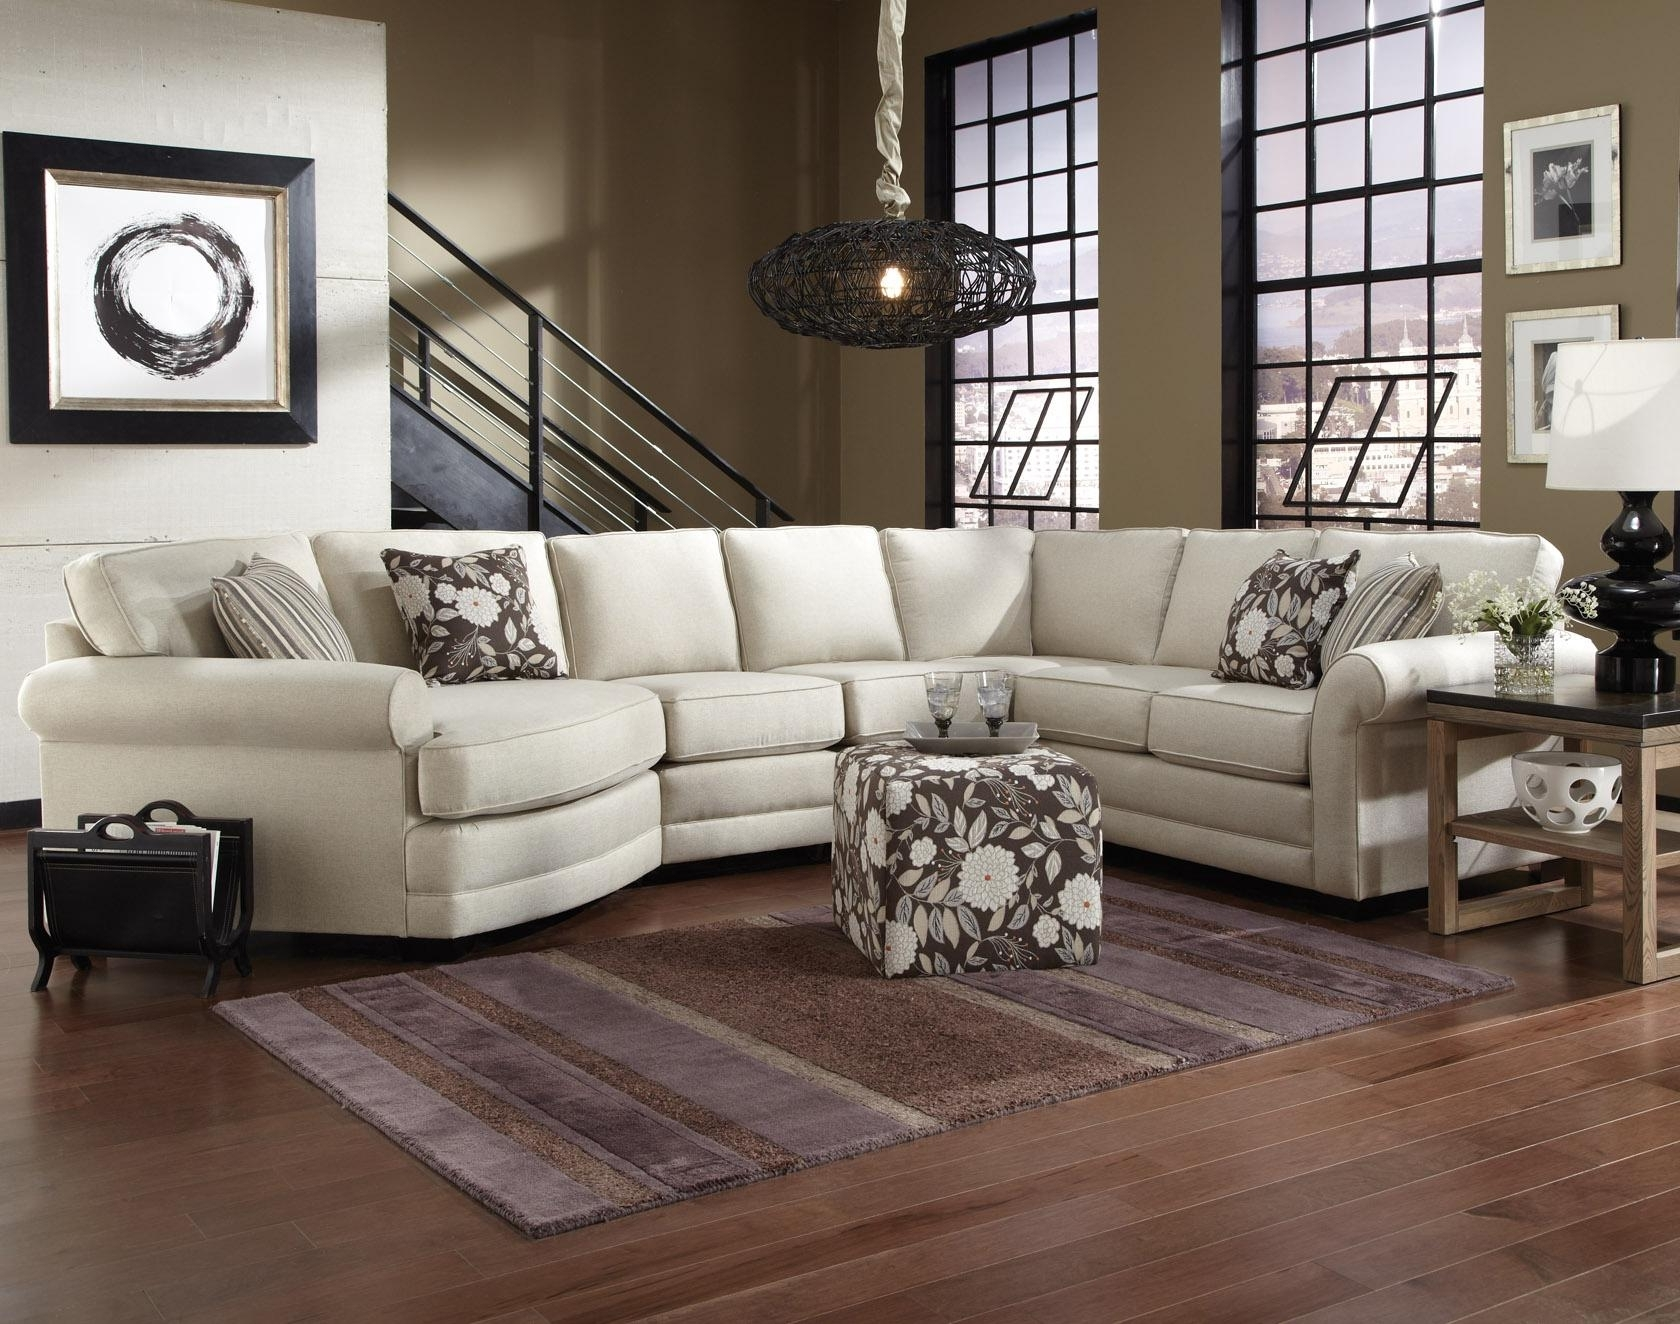 Newest Cuddler Sectional Sofas Within England Brantley 5 Seat Sectional Sofa With Cuddler (View 16 of 20)